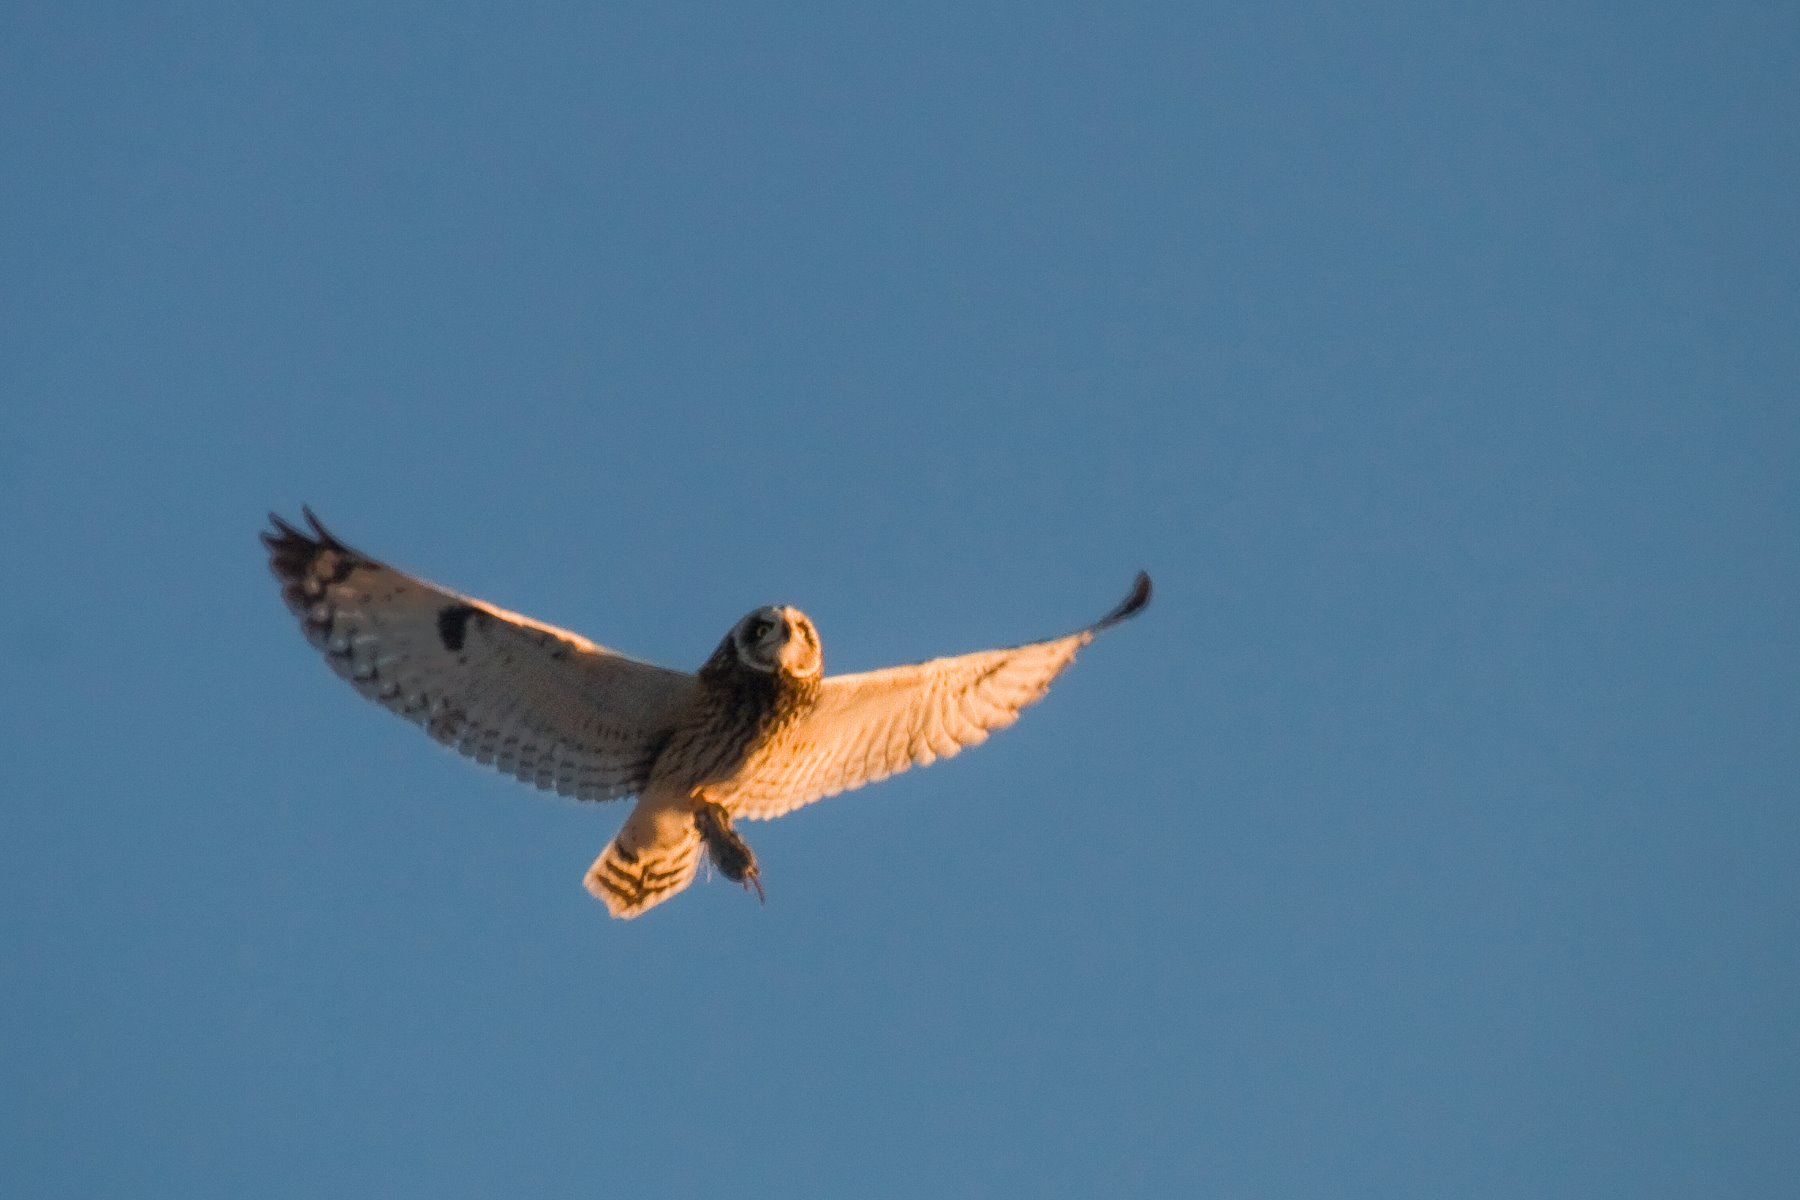 Owls are typically nighttime hunters.